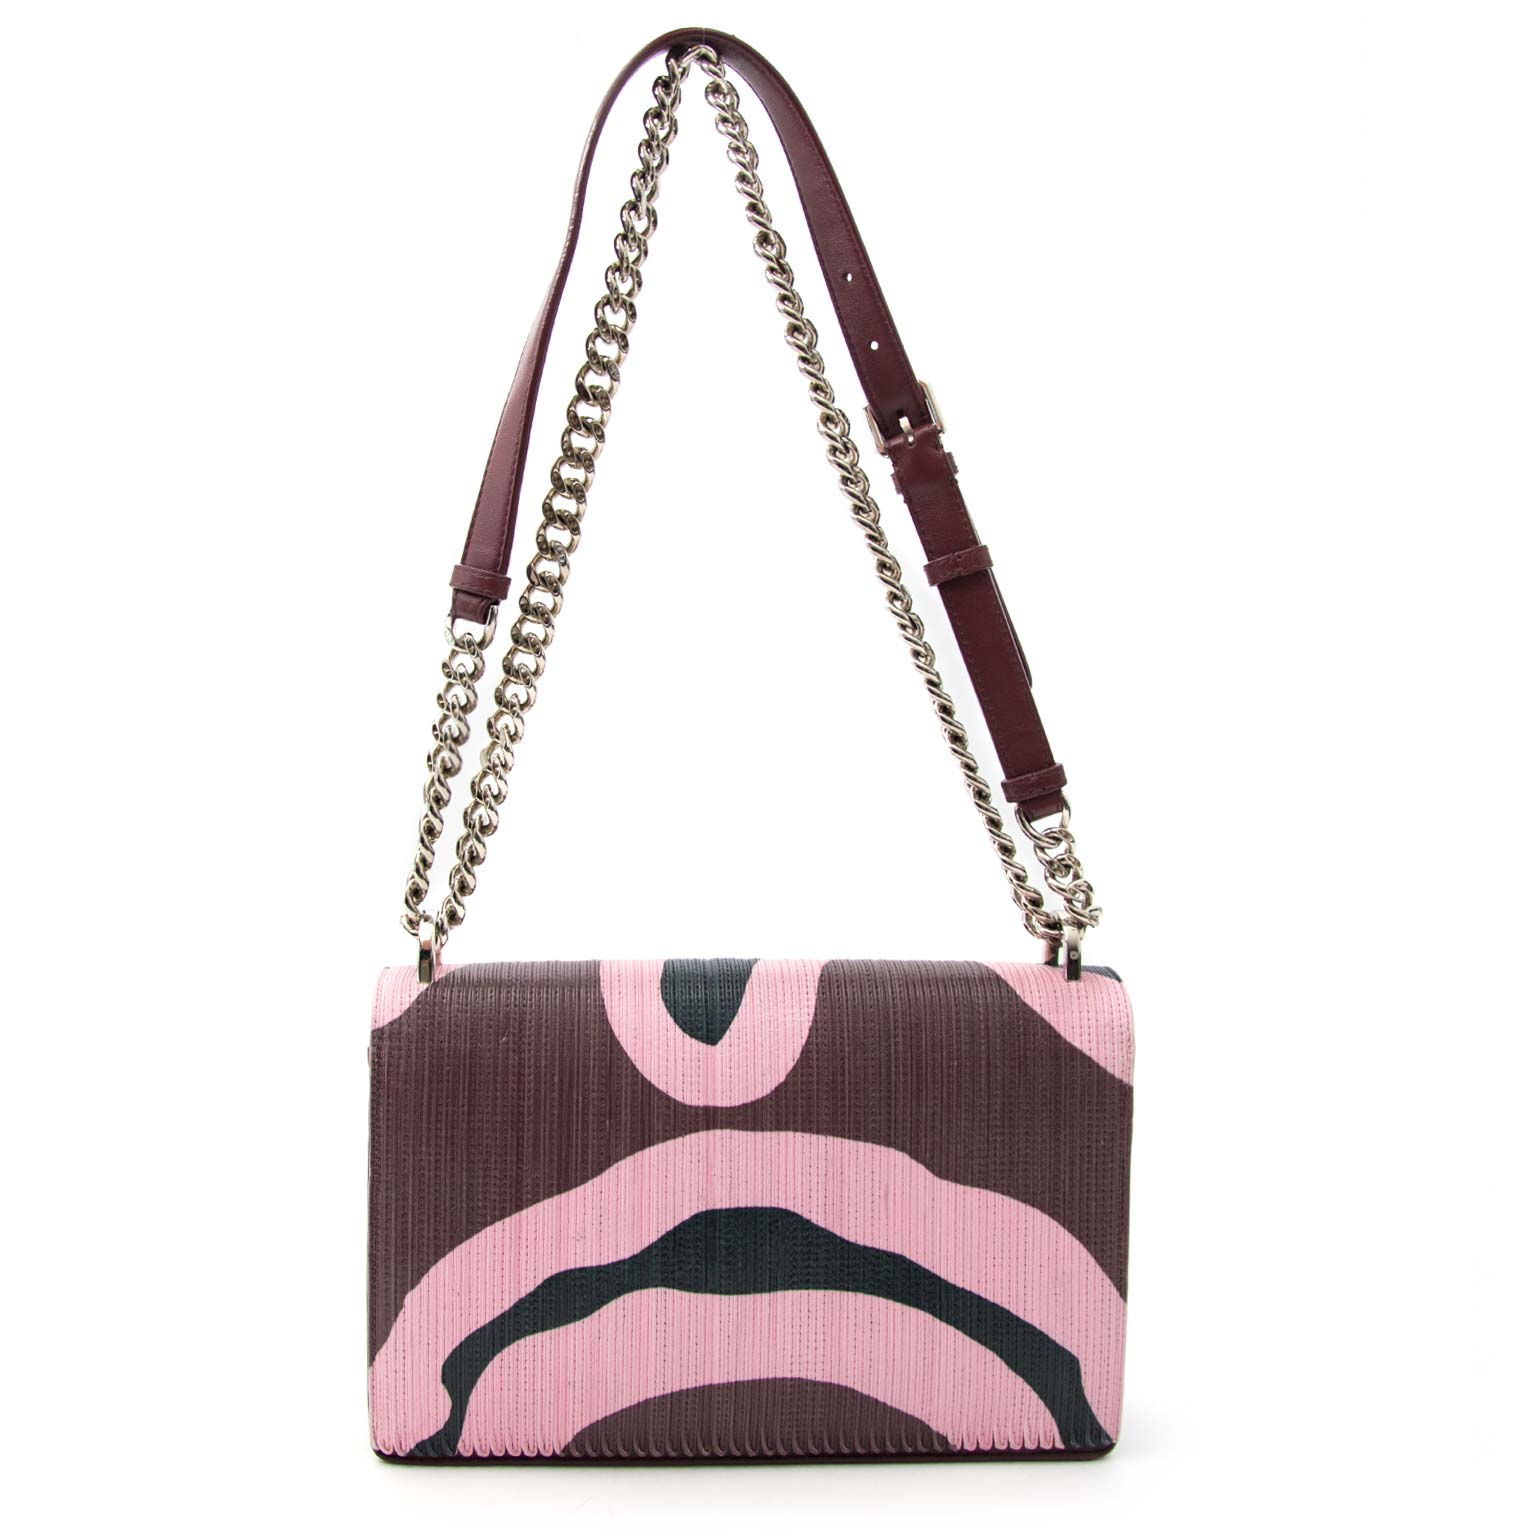 Christian Dior Diorama Printed Patchwork Leather Bag for sale online at  Labellov. Kop uw authentieke designe rhandtas online 9b25c2e74cd7b